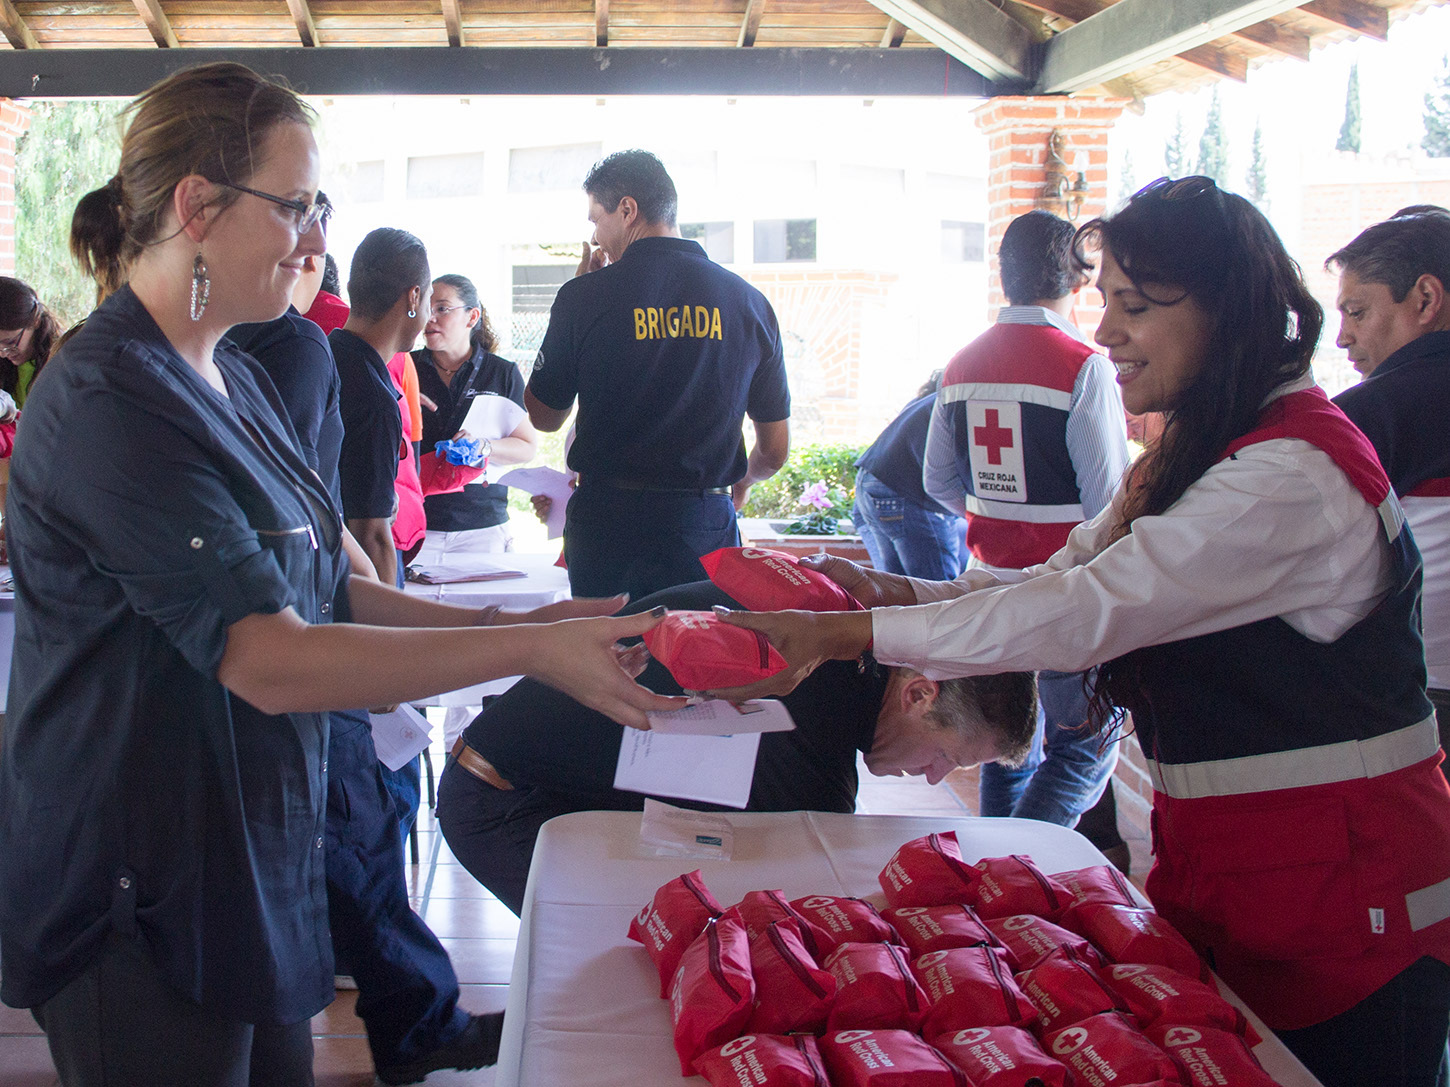 Ball employees recently joined together to build first aid kits for the Mexican Red Cross to distribute to those in need throughout the country.